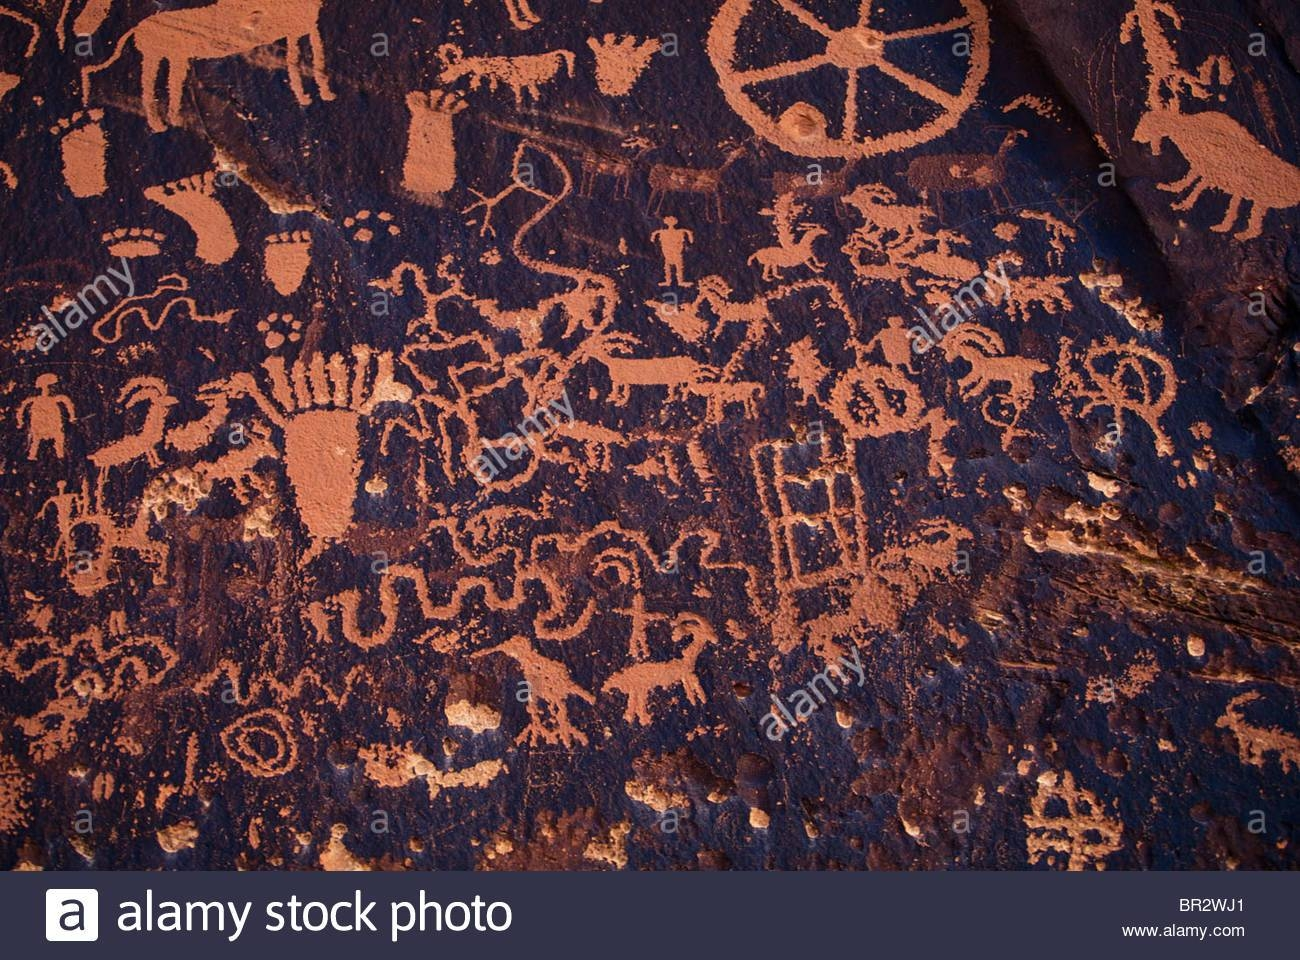 Native American Cave Art/wall Drawings Stock Photo, Royalty Free Pertaining To Newest Native American Wall Art (View 17 of 25)